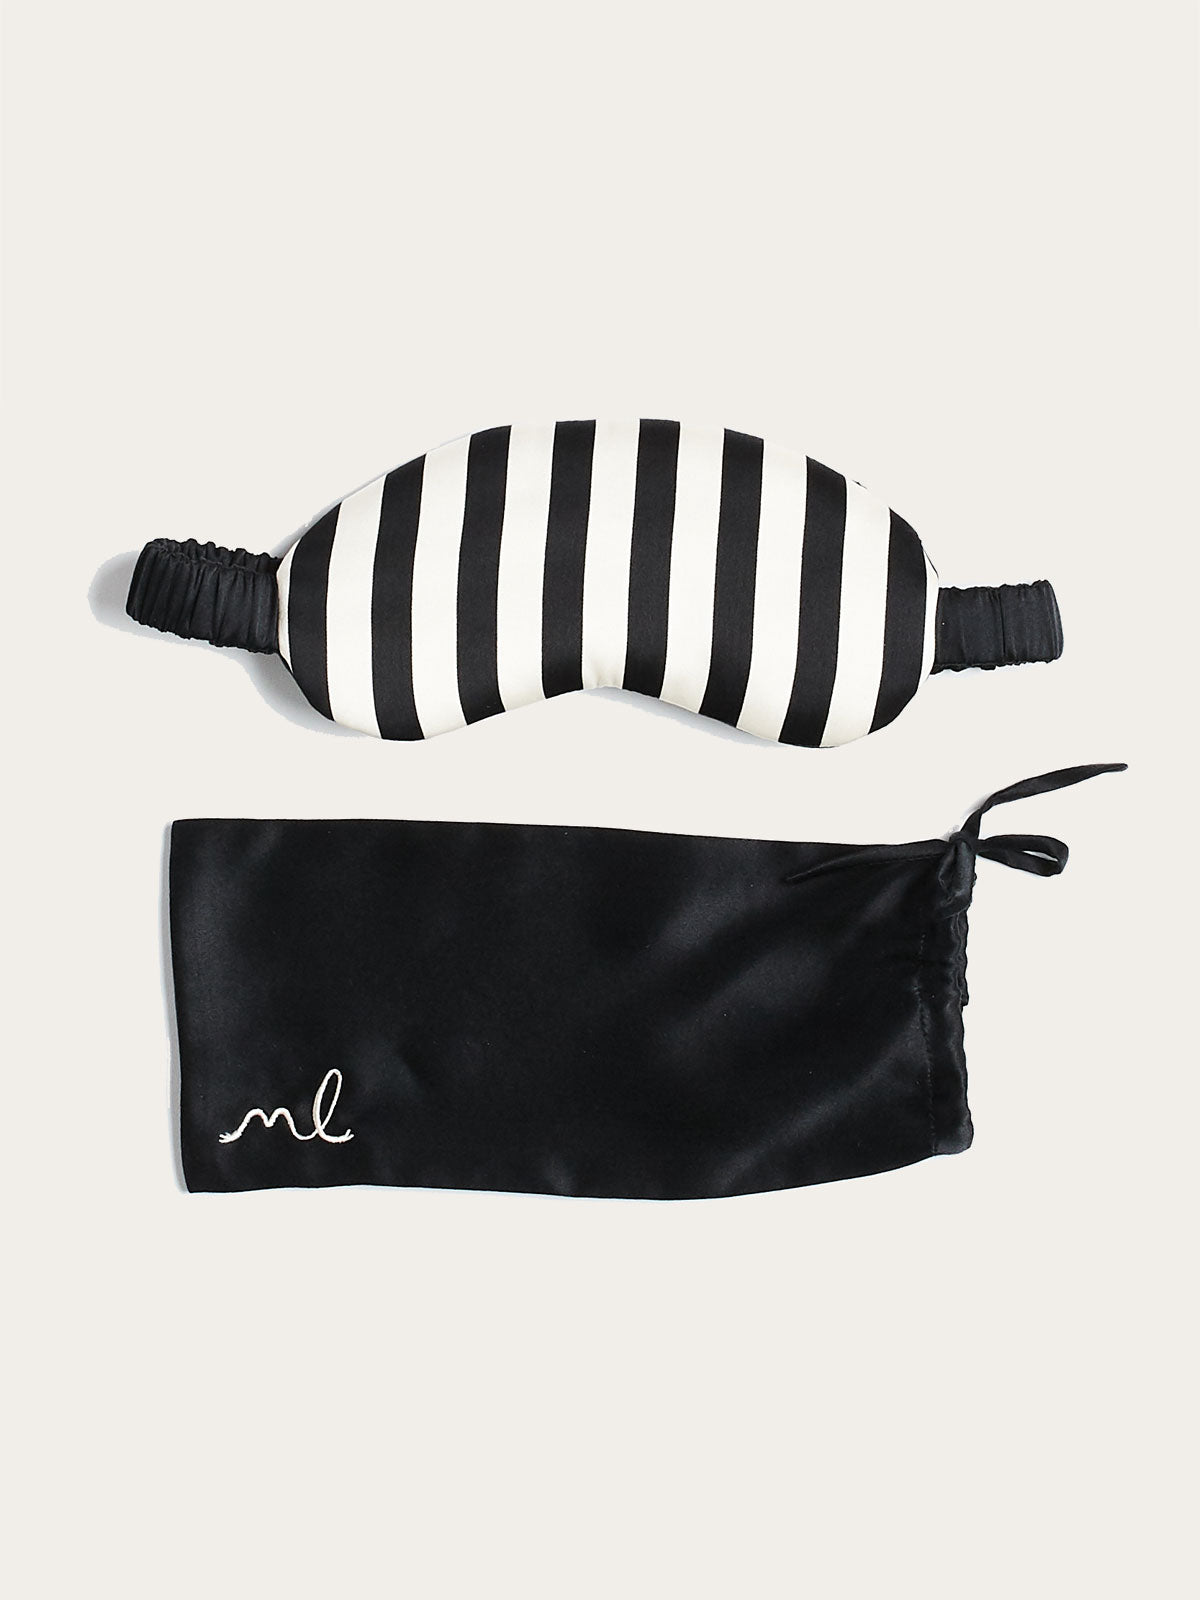 Noir Monogram Mask By Morgan Lane